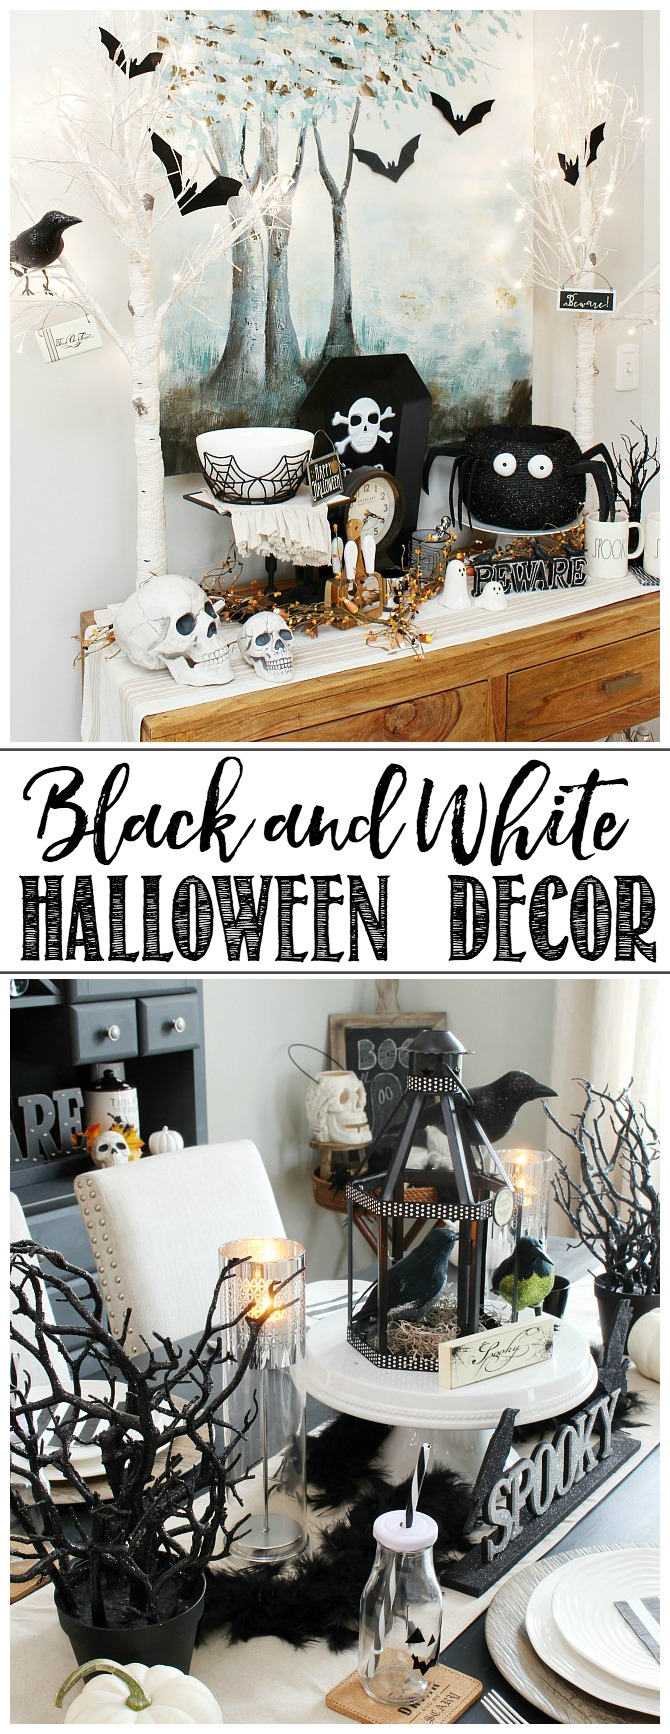 Black And White Halloween Decor For A Halloween Tablescape And Halloween Dining  Room.